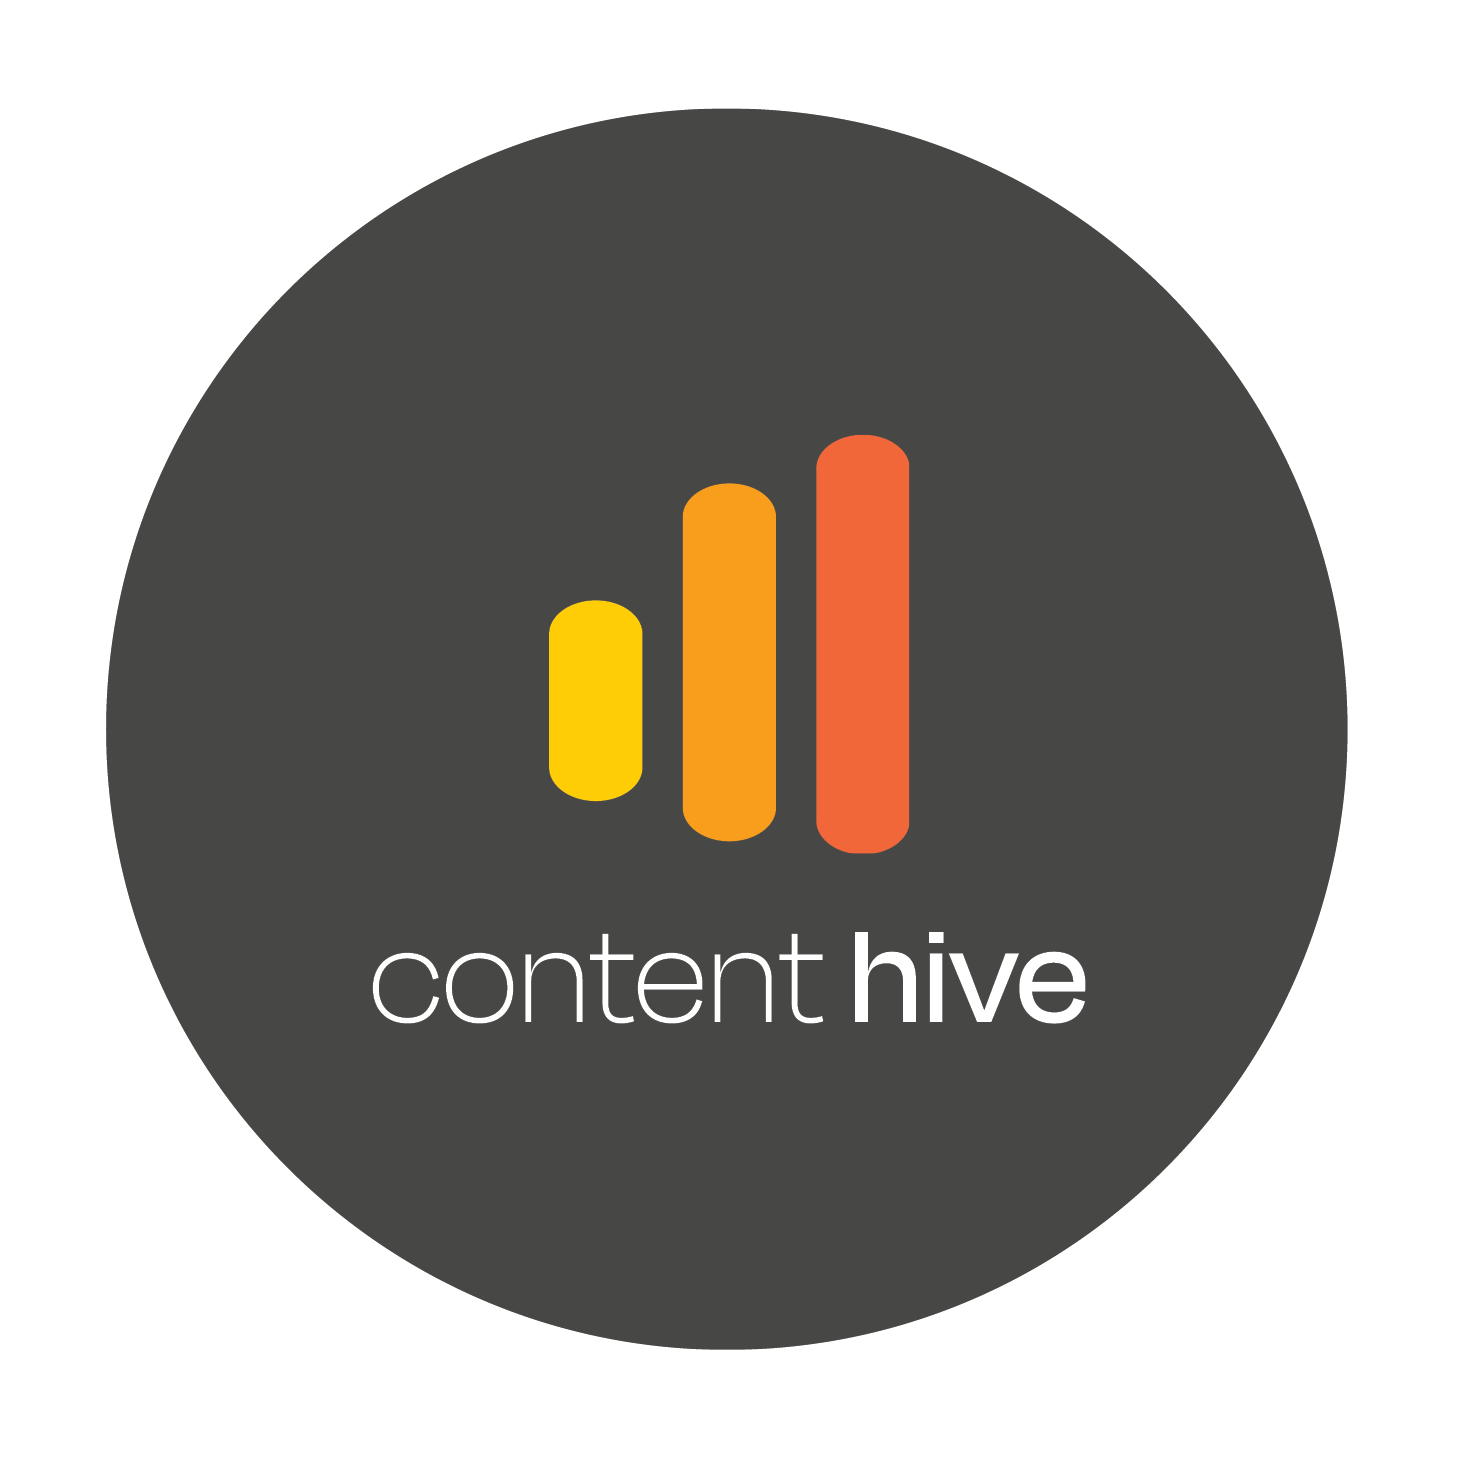 Madd_Contacts_Page_Content_Hive